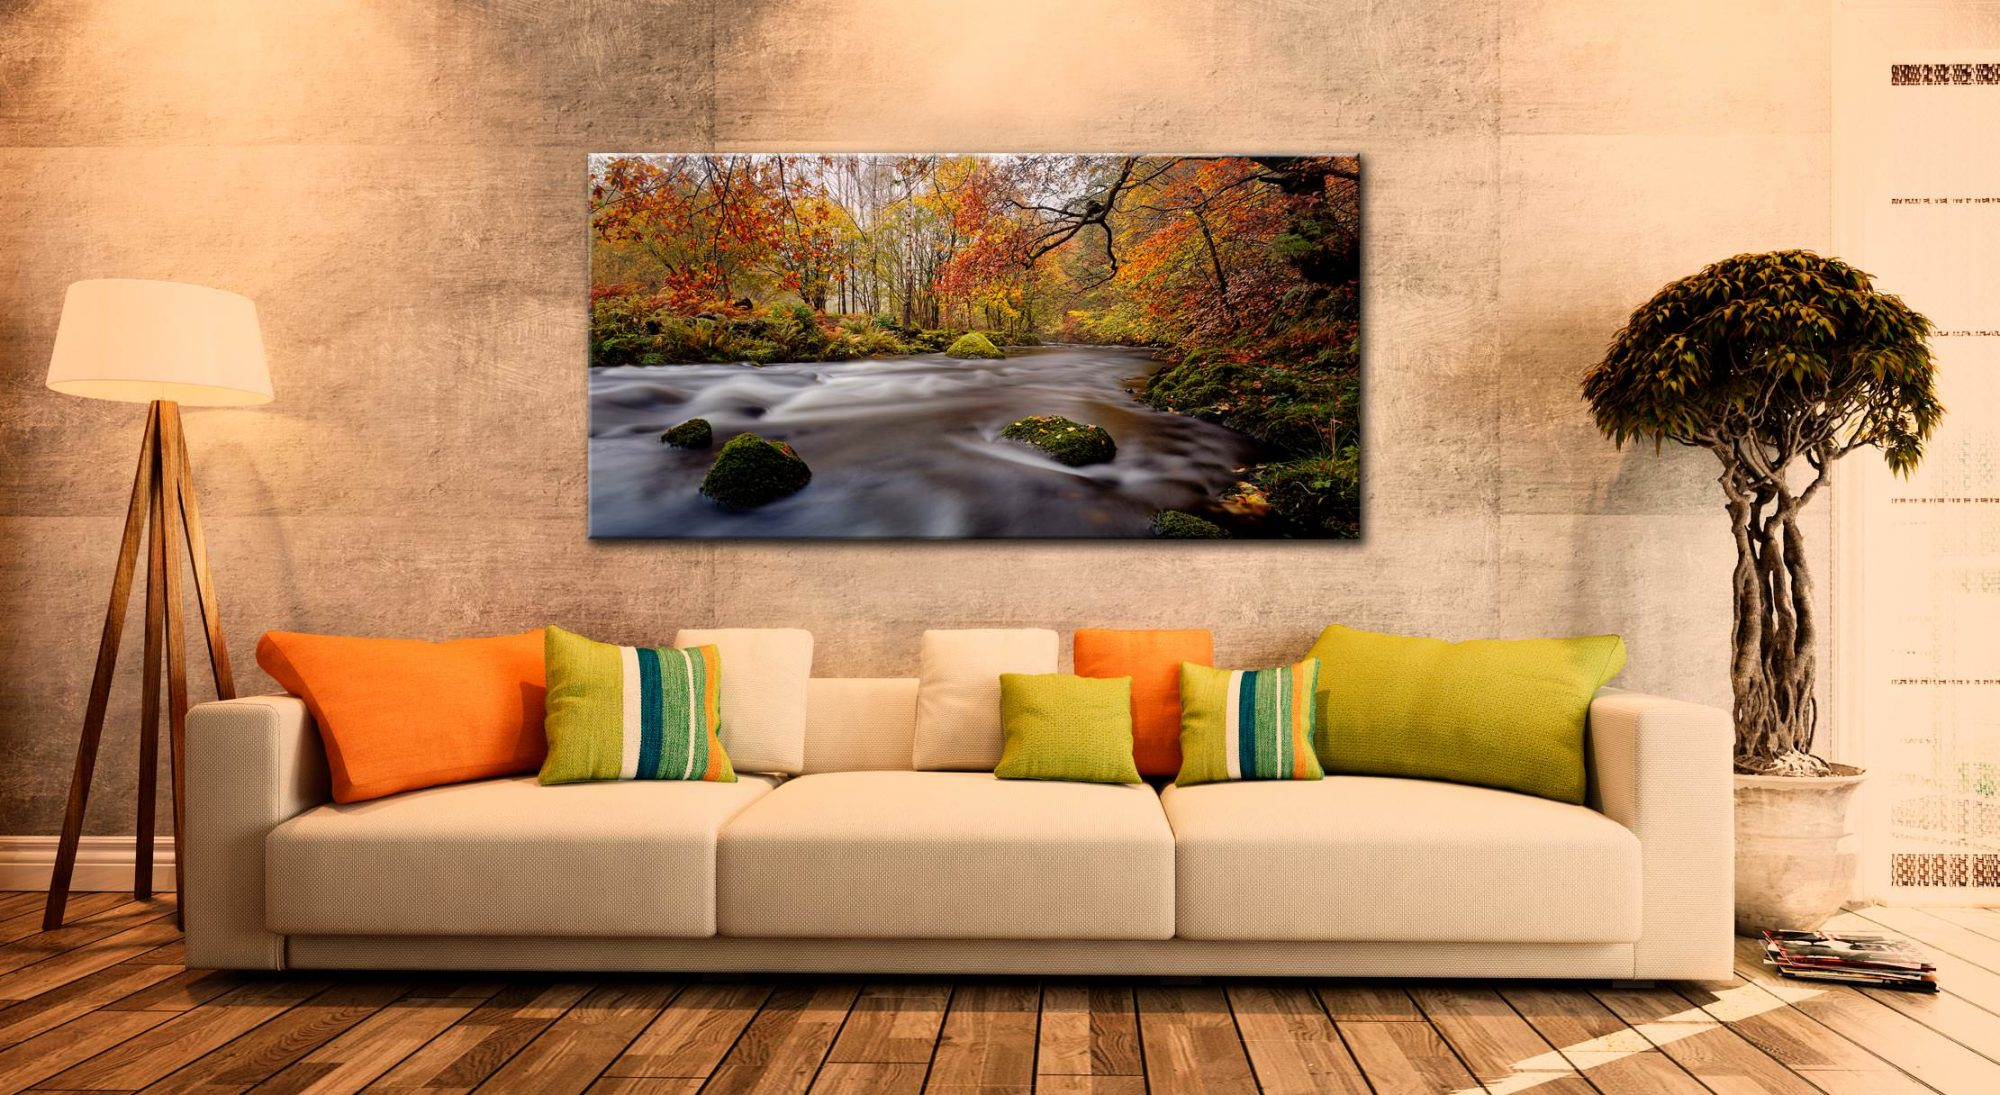 Autumn Colours of River Rothay - Canvas Print on Wall